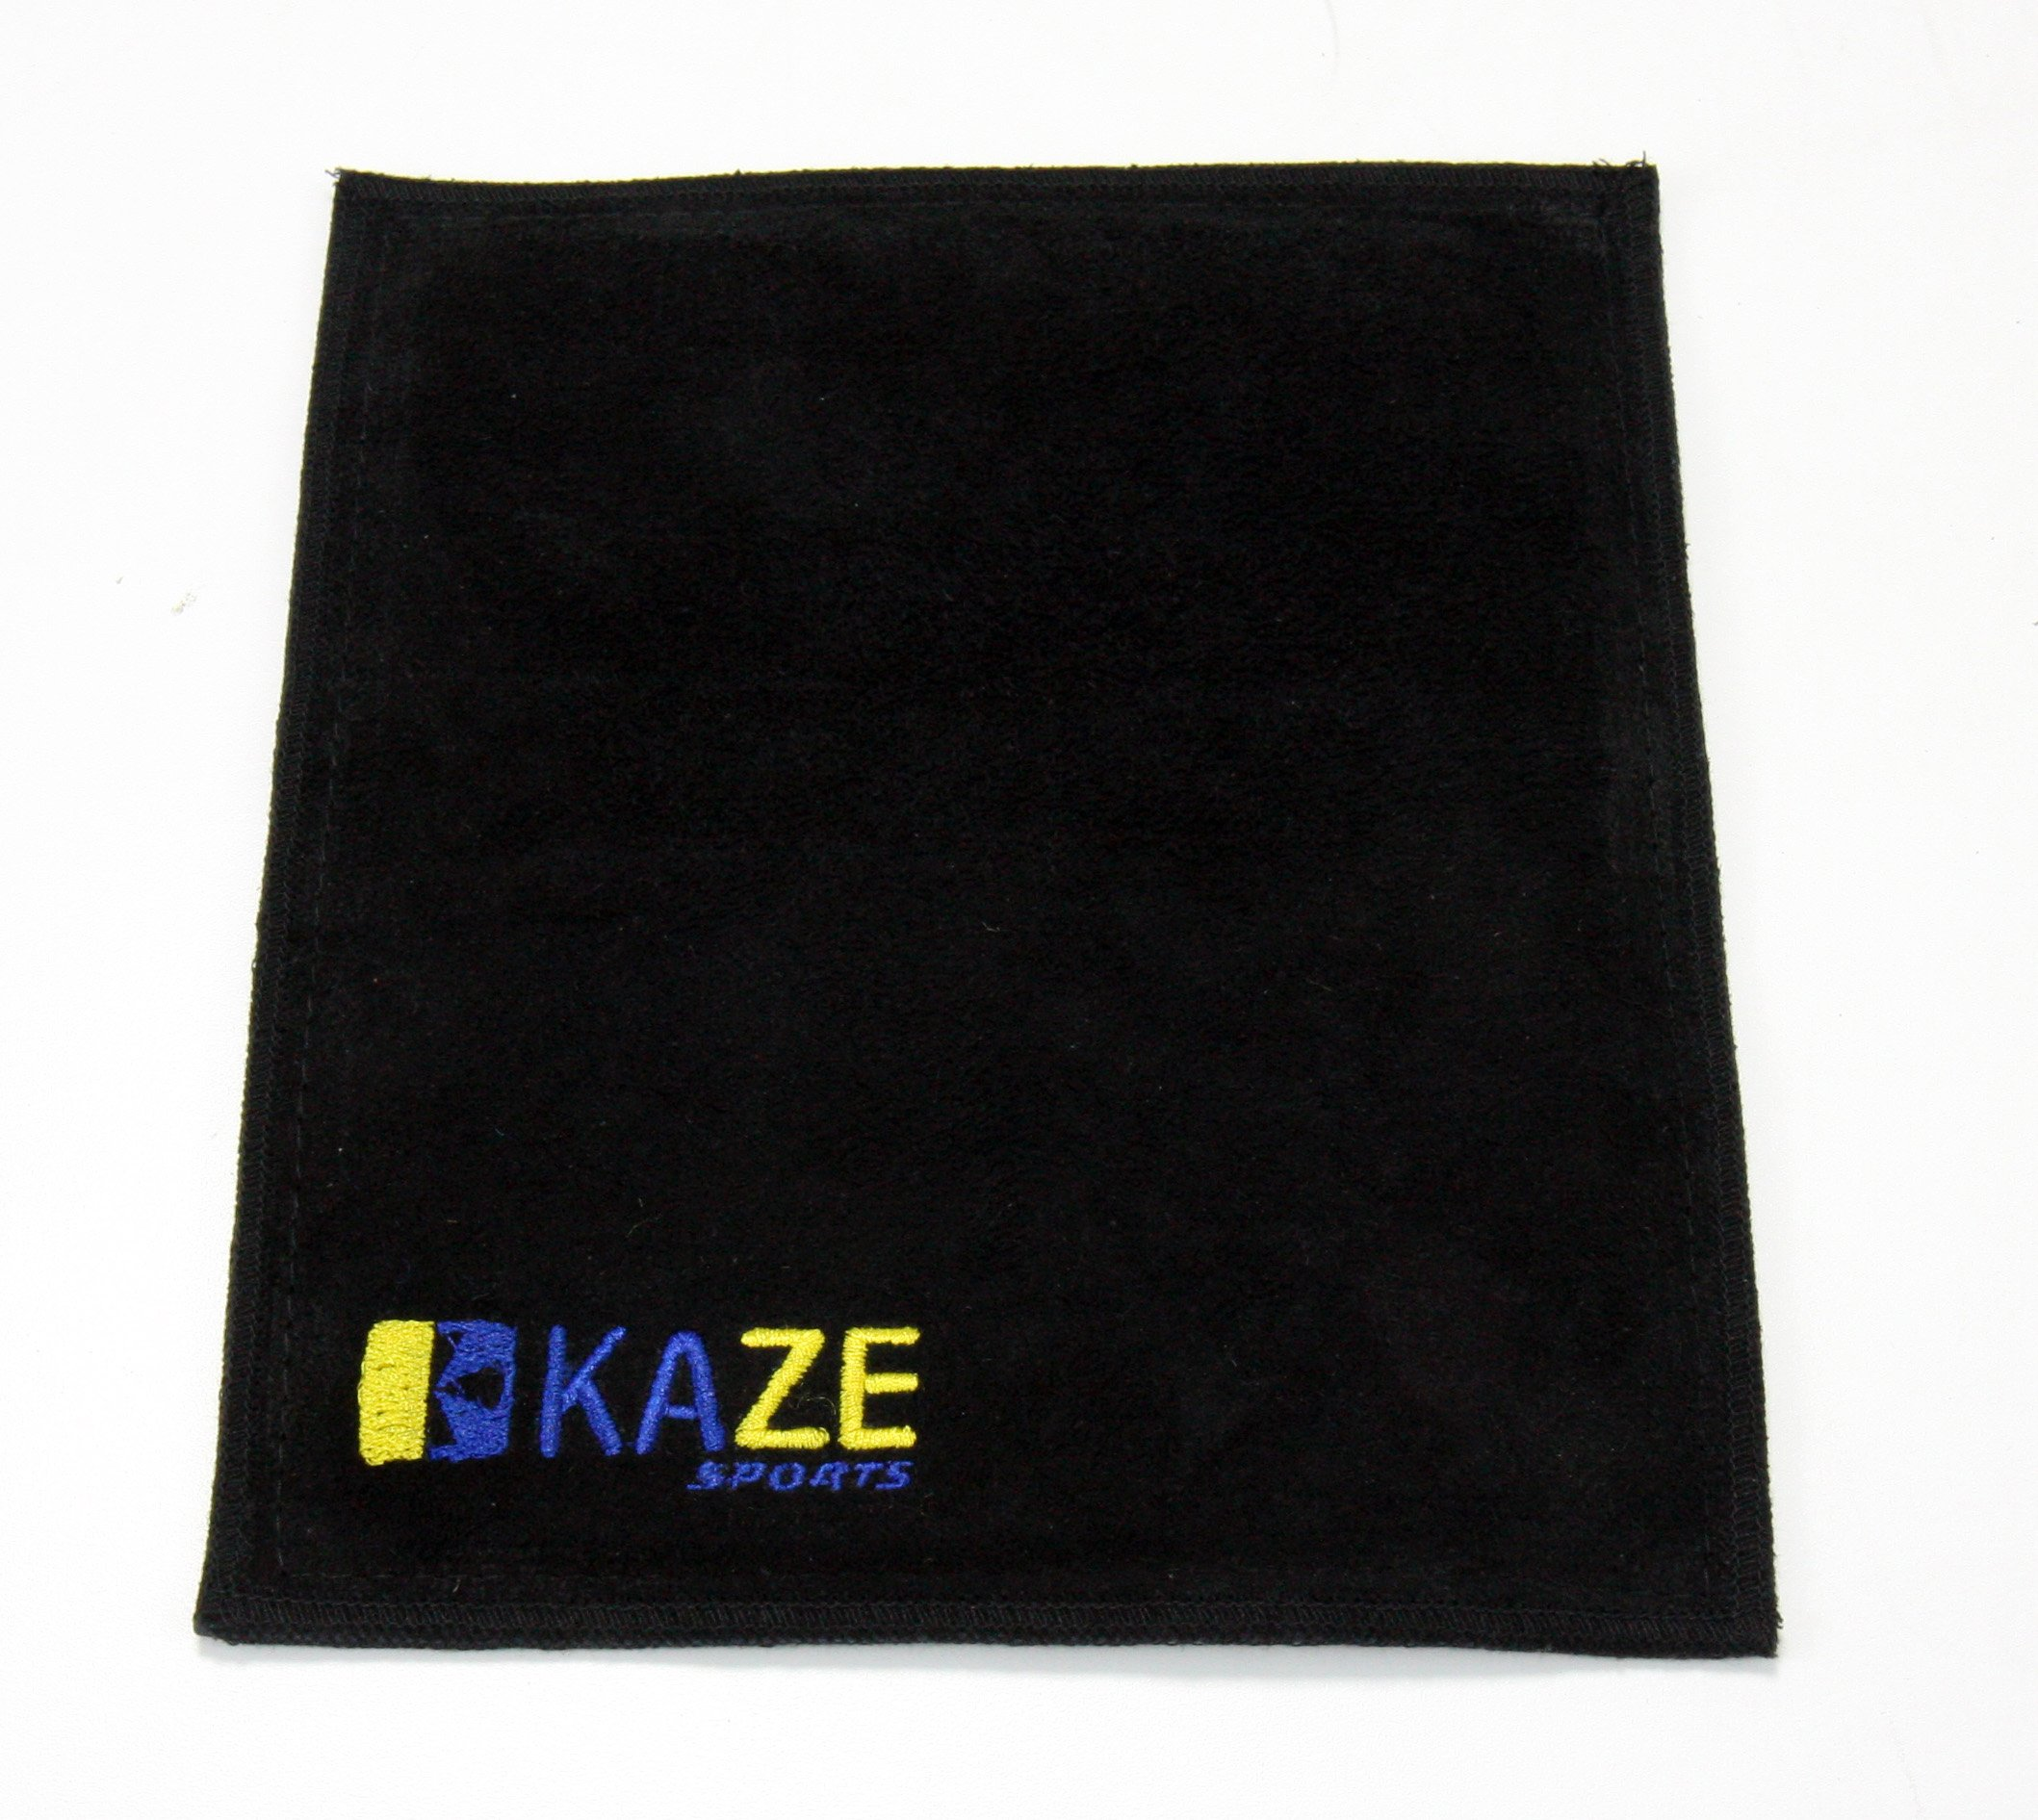 KAZE SPORTS Premium Leather Shammy Pad Bowling Ball Cleaning Towel (1)